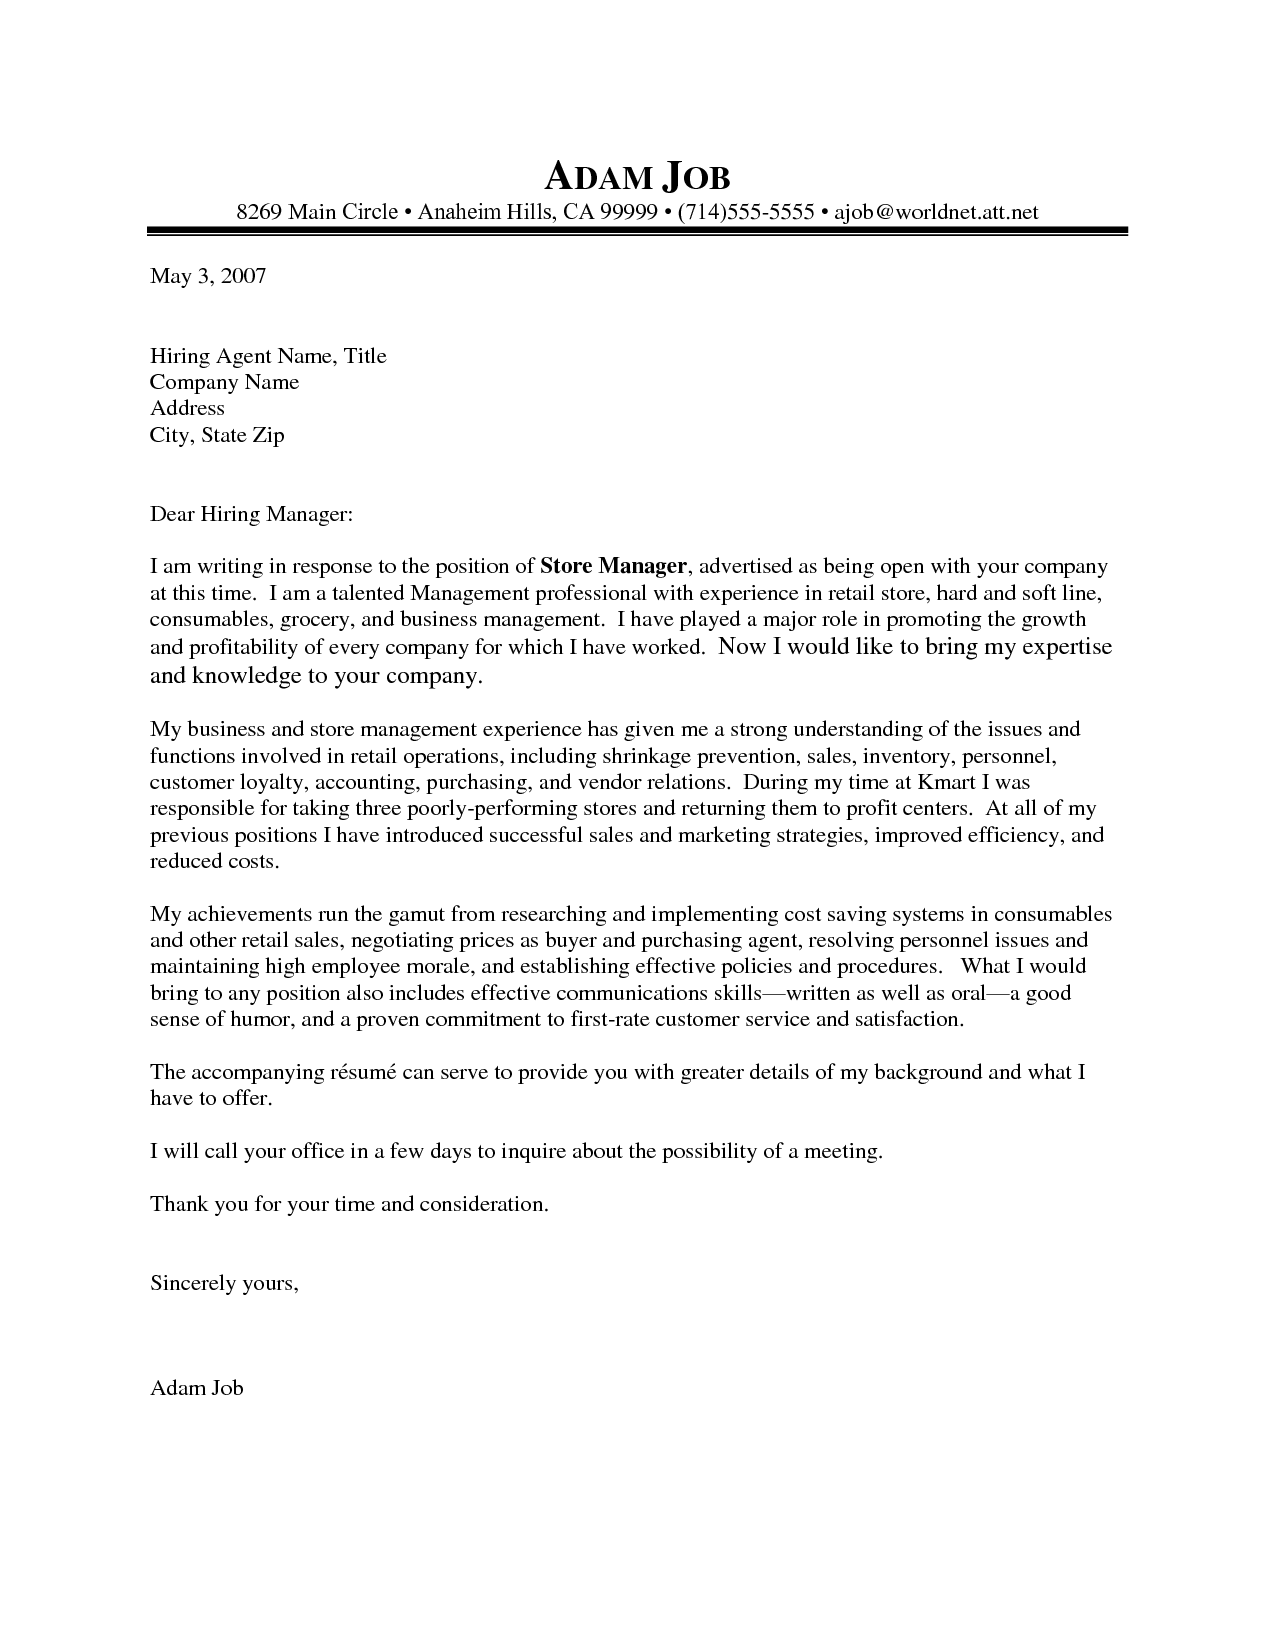 College Cover Letter Fair Application Letter Sample For Any Position College Admissions Inspiration Design